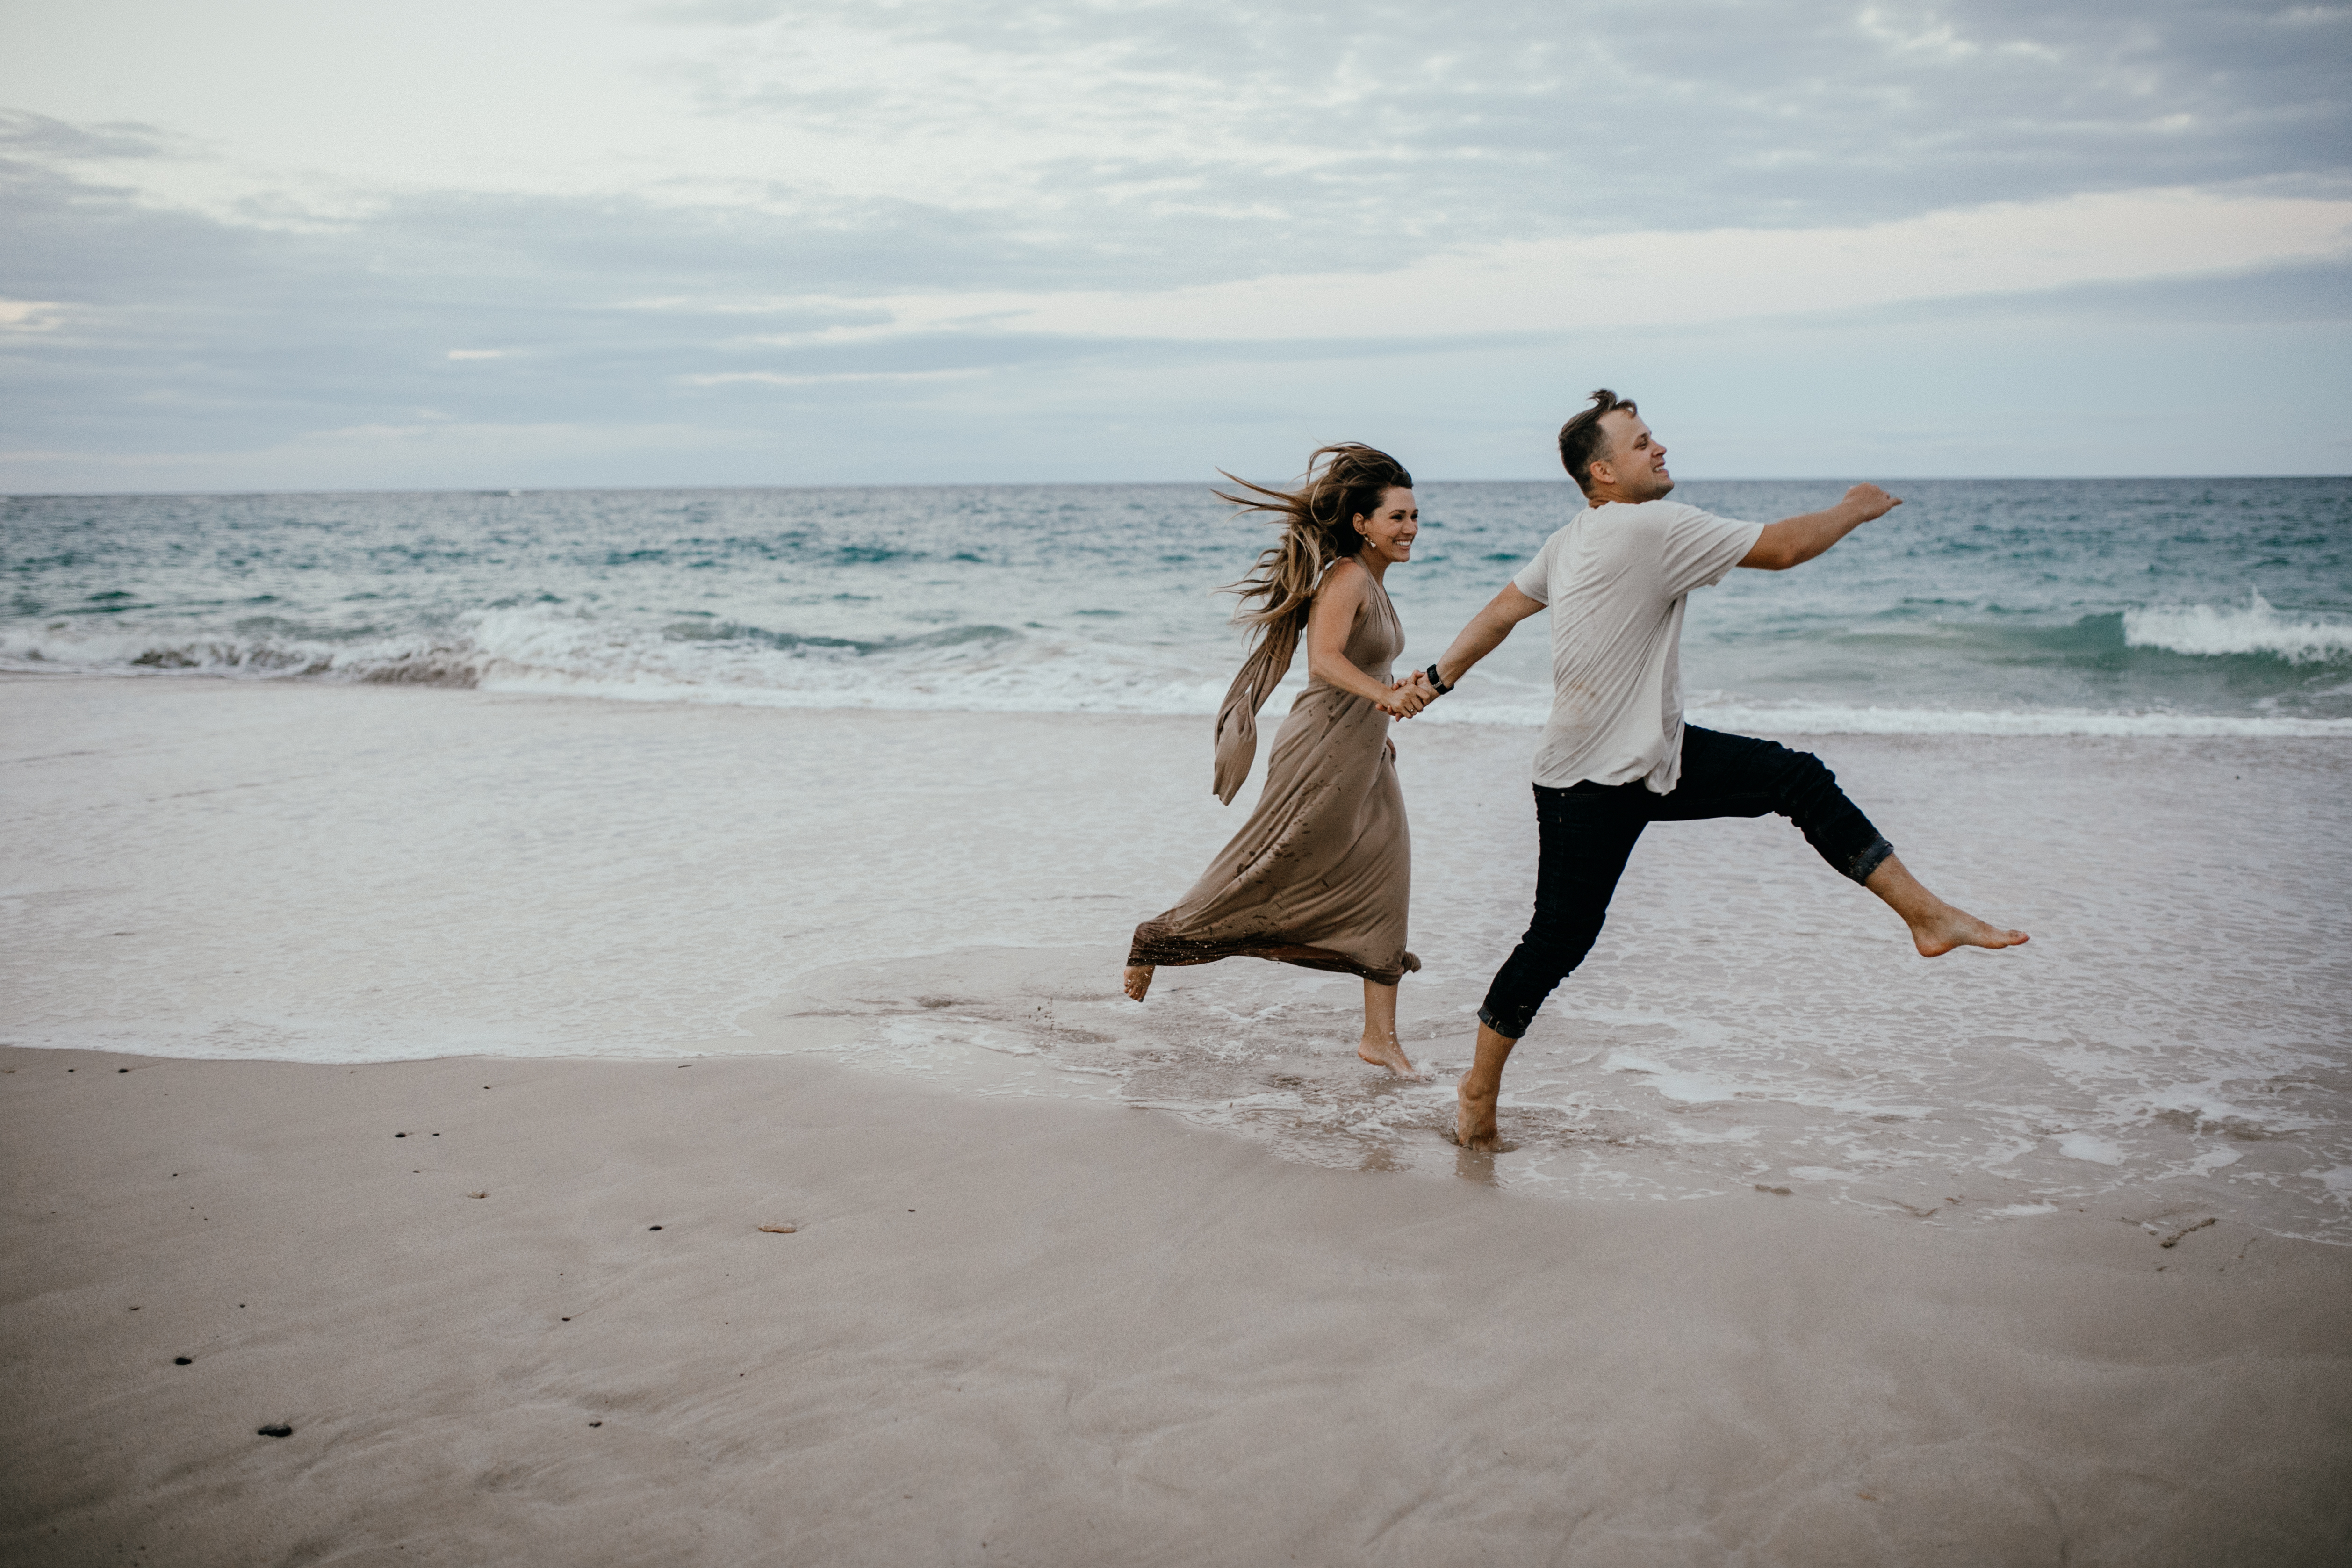 Oahu Couples Photography, couple skipping down the beach together